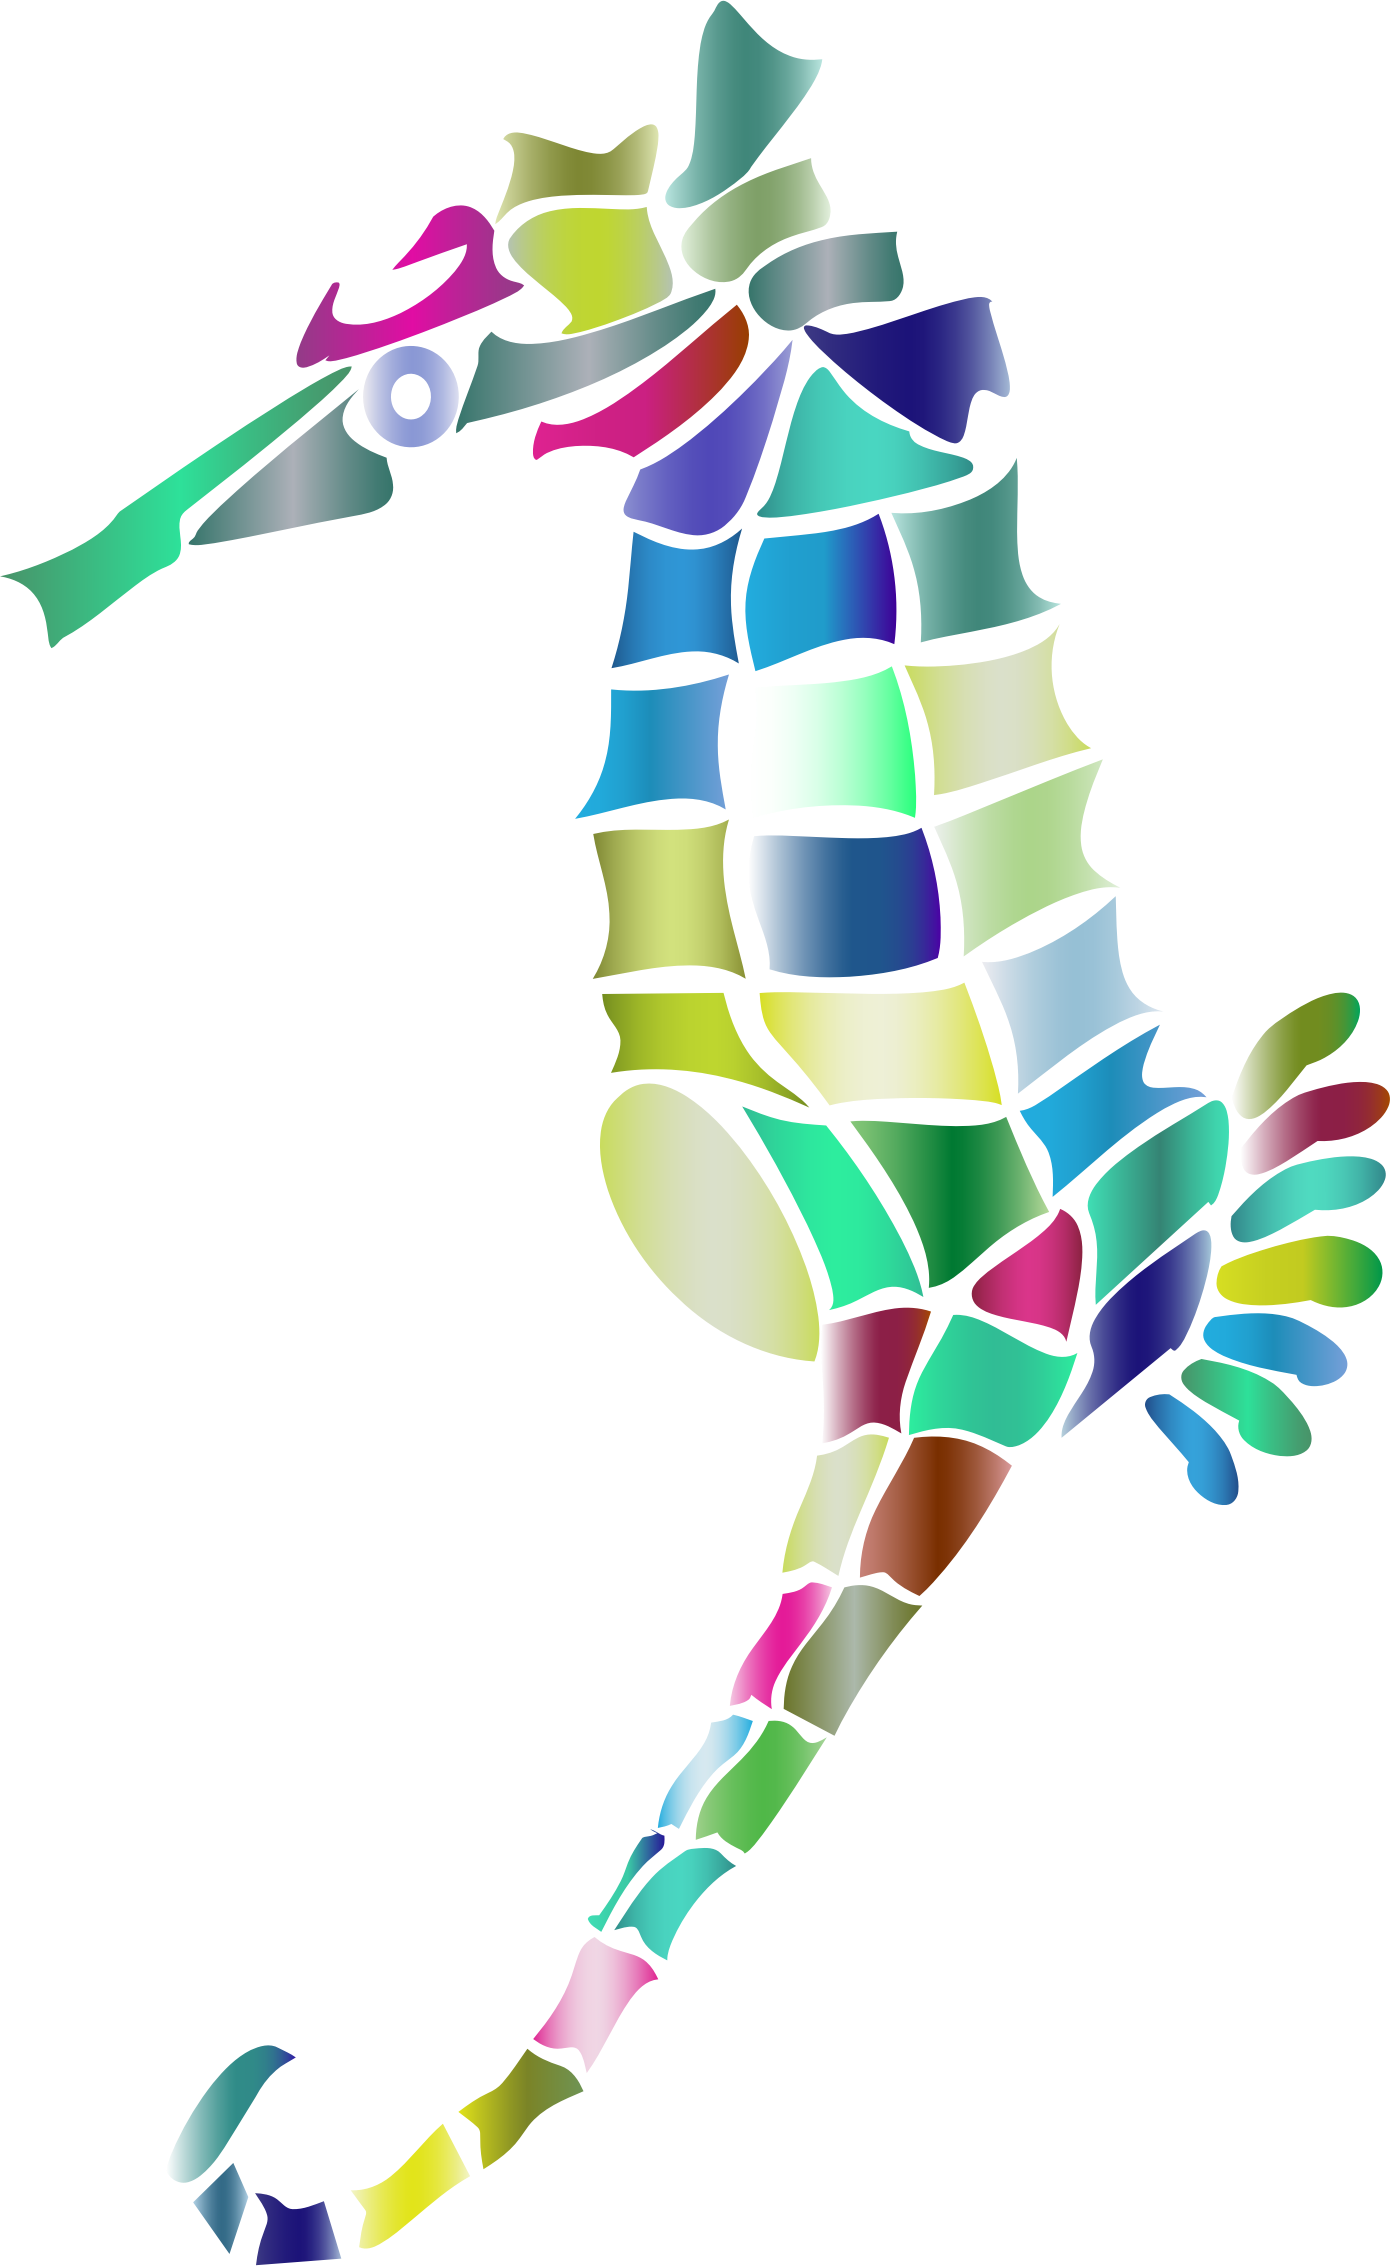 Prismatic Stylized Seahorse Silhouette 3 by GDJ